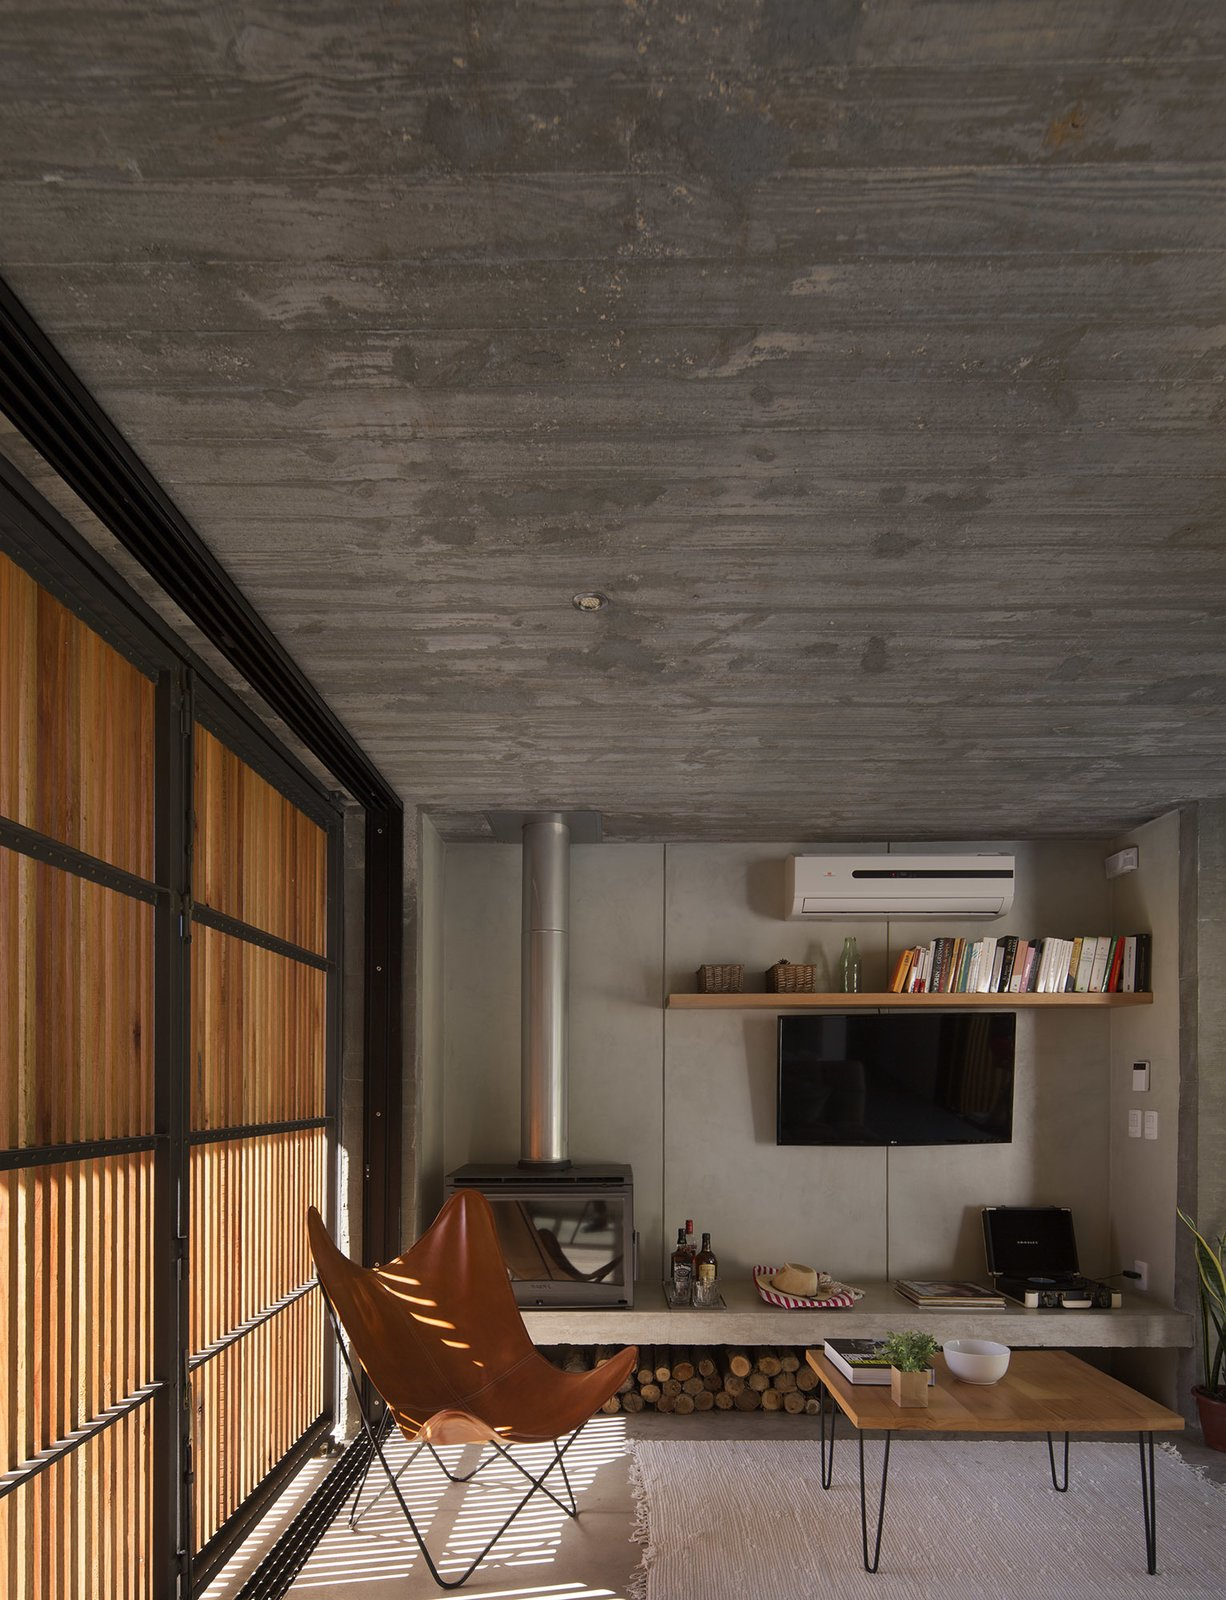 Living Room, Chair, Sofa, Ceiling Lighting, and Concrete Floor  MARINDIA HOUSE